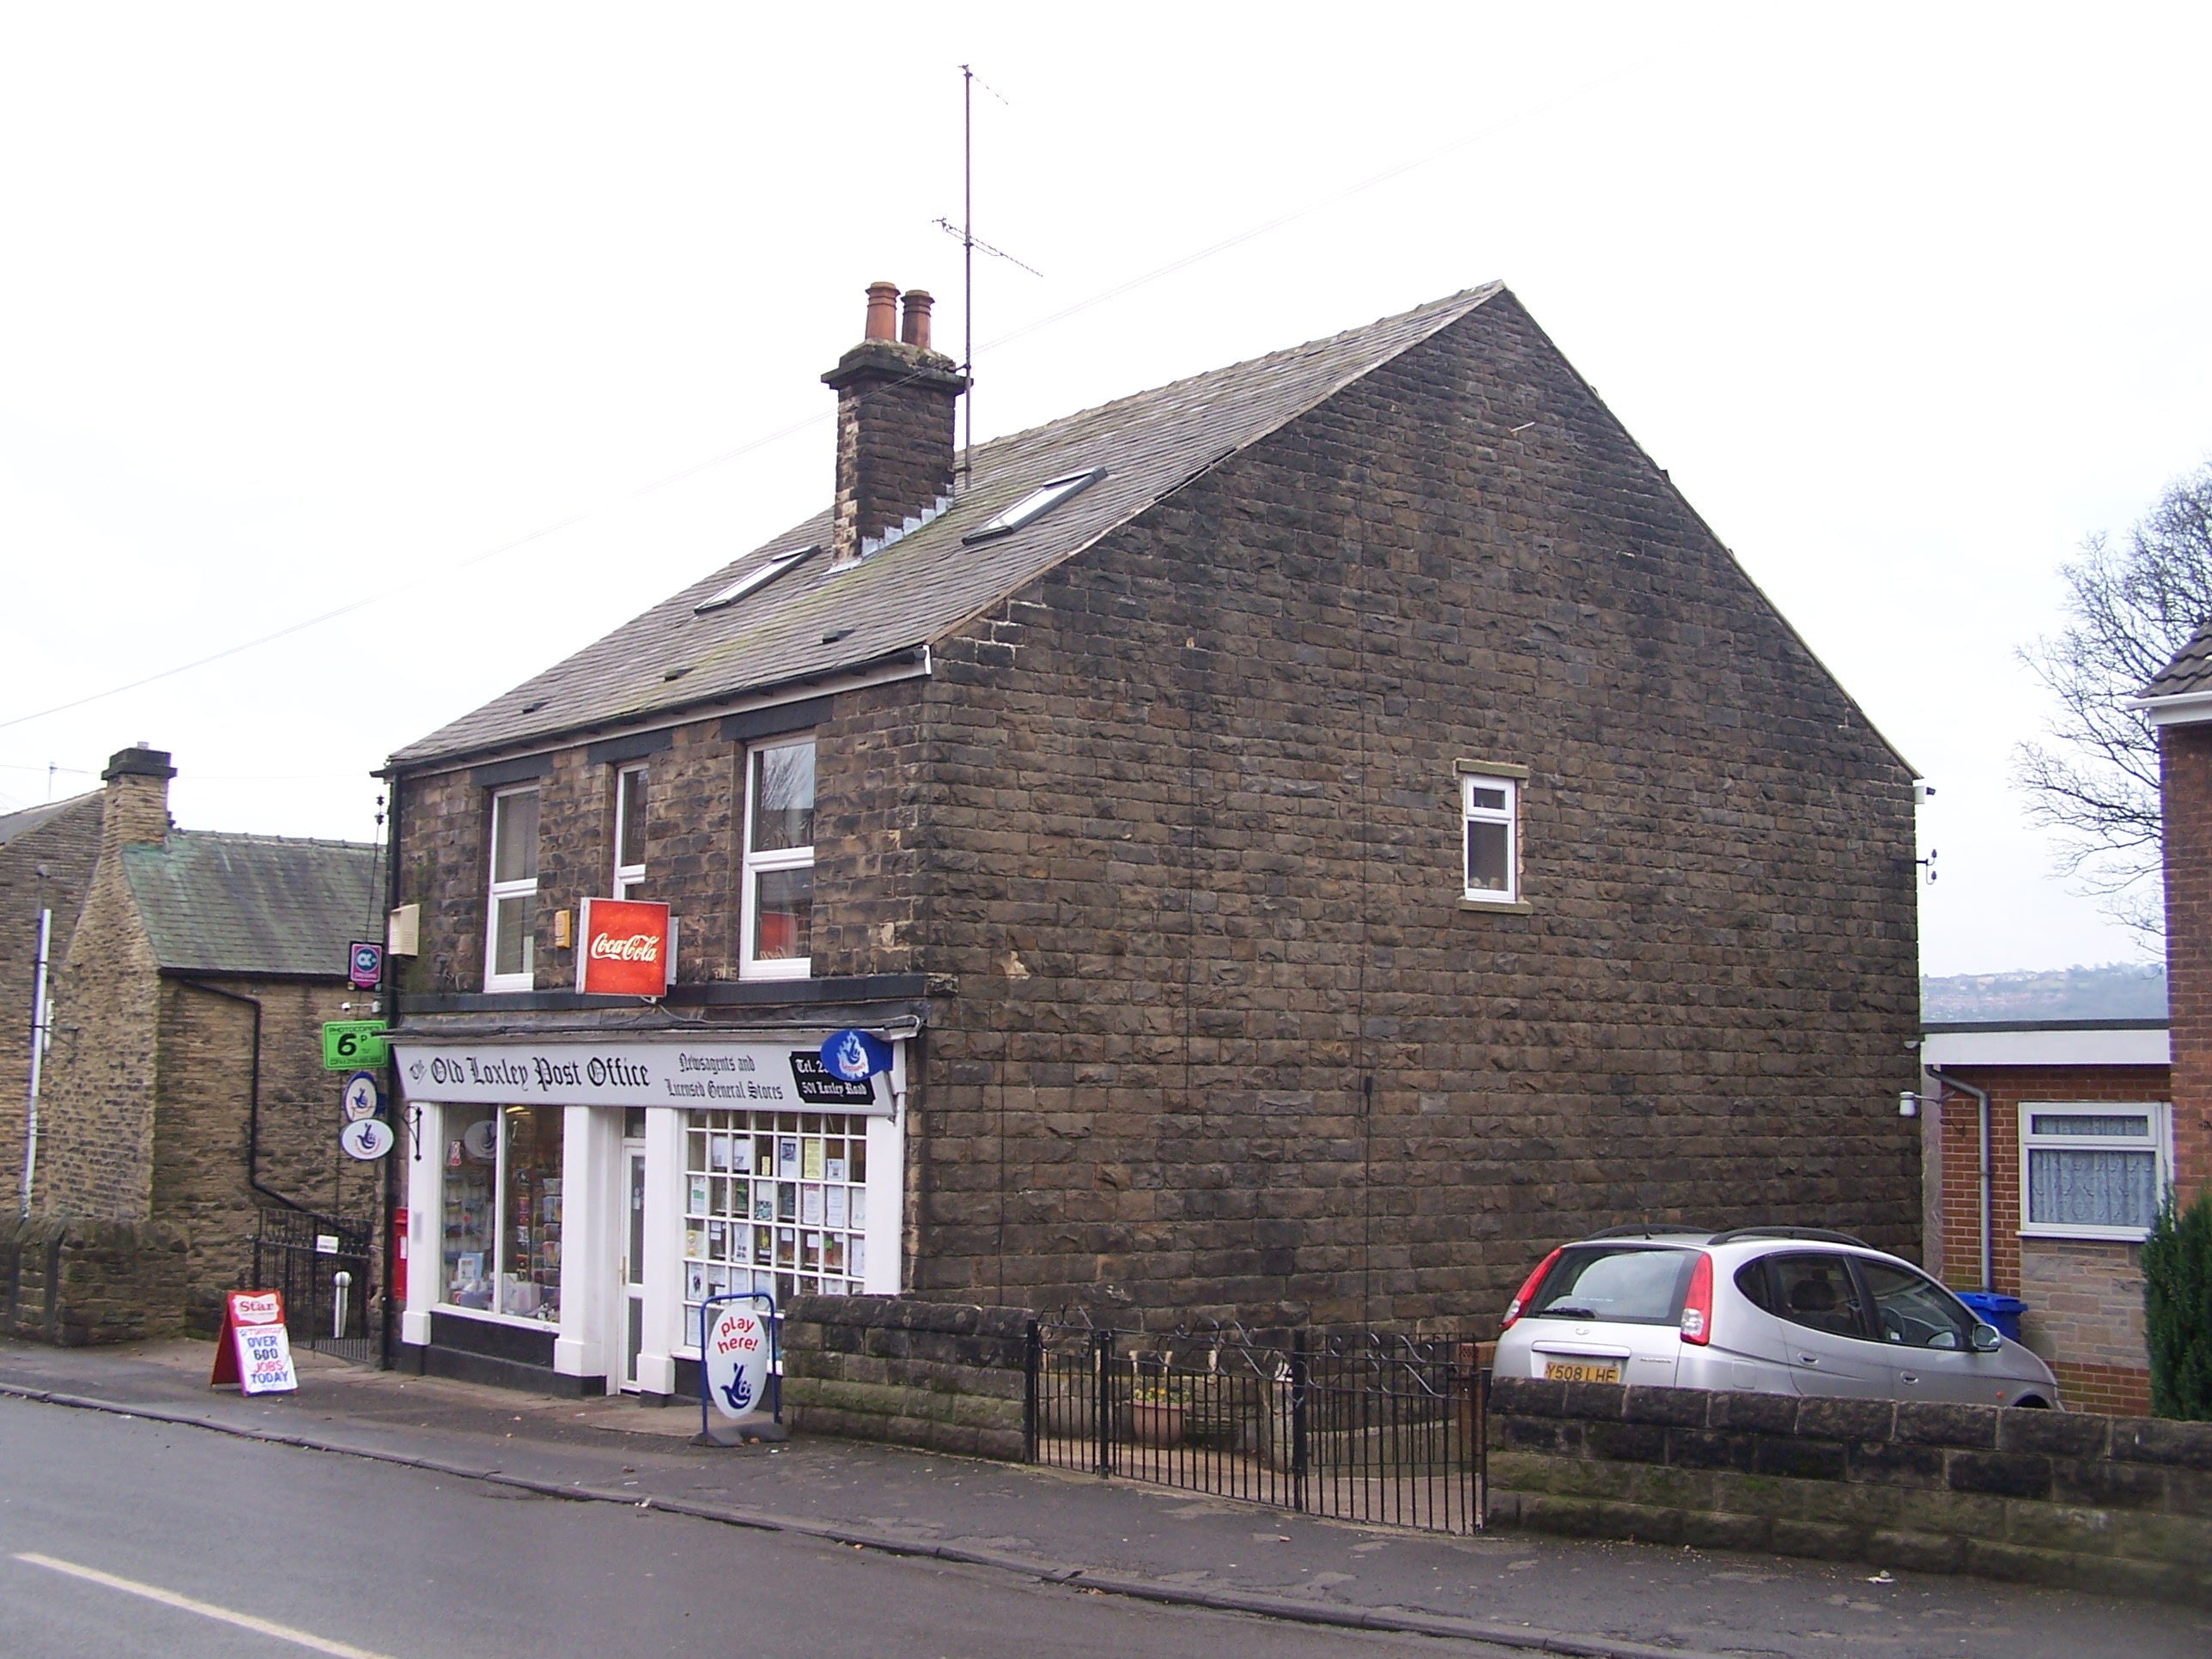 Home office sheffield address - File Old Loxley Post Office Loxley Road Loxley Sheffield Geograph